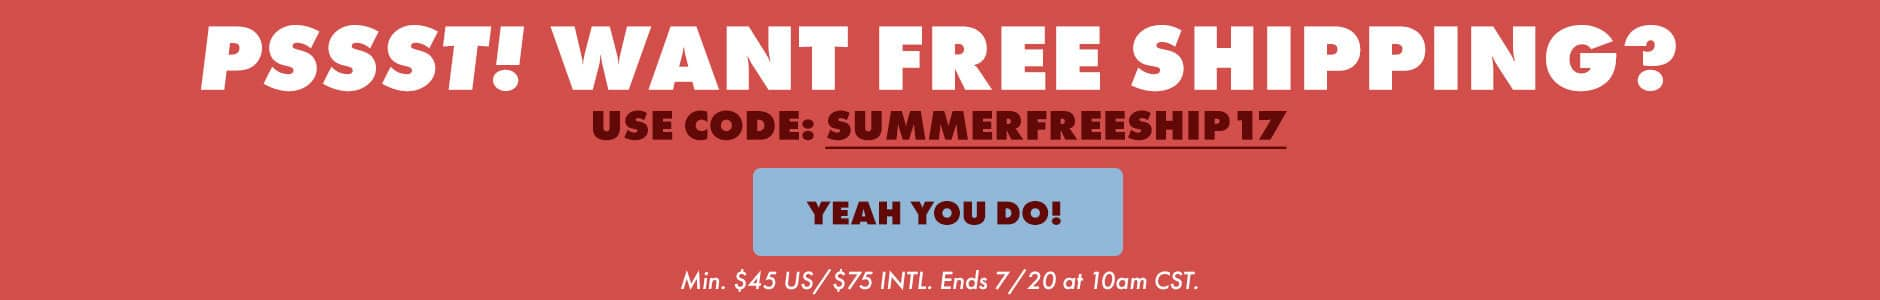 Pssst! Want Free shipping? Use code: SUMMERFREESHIP17 Min $45 US/$75 Intl. Ends 7/20 at 10AM CST.